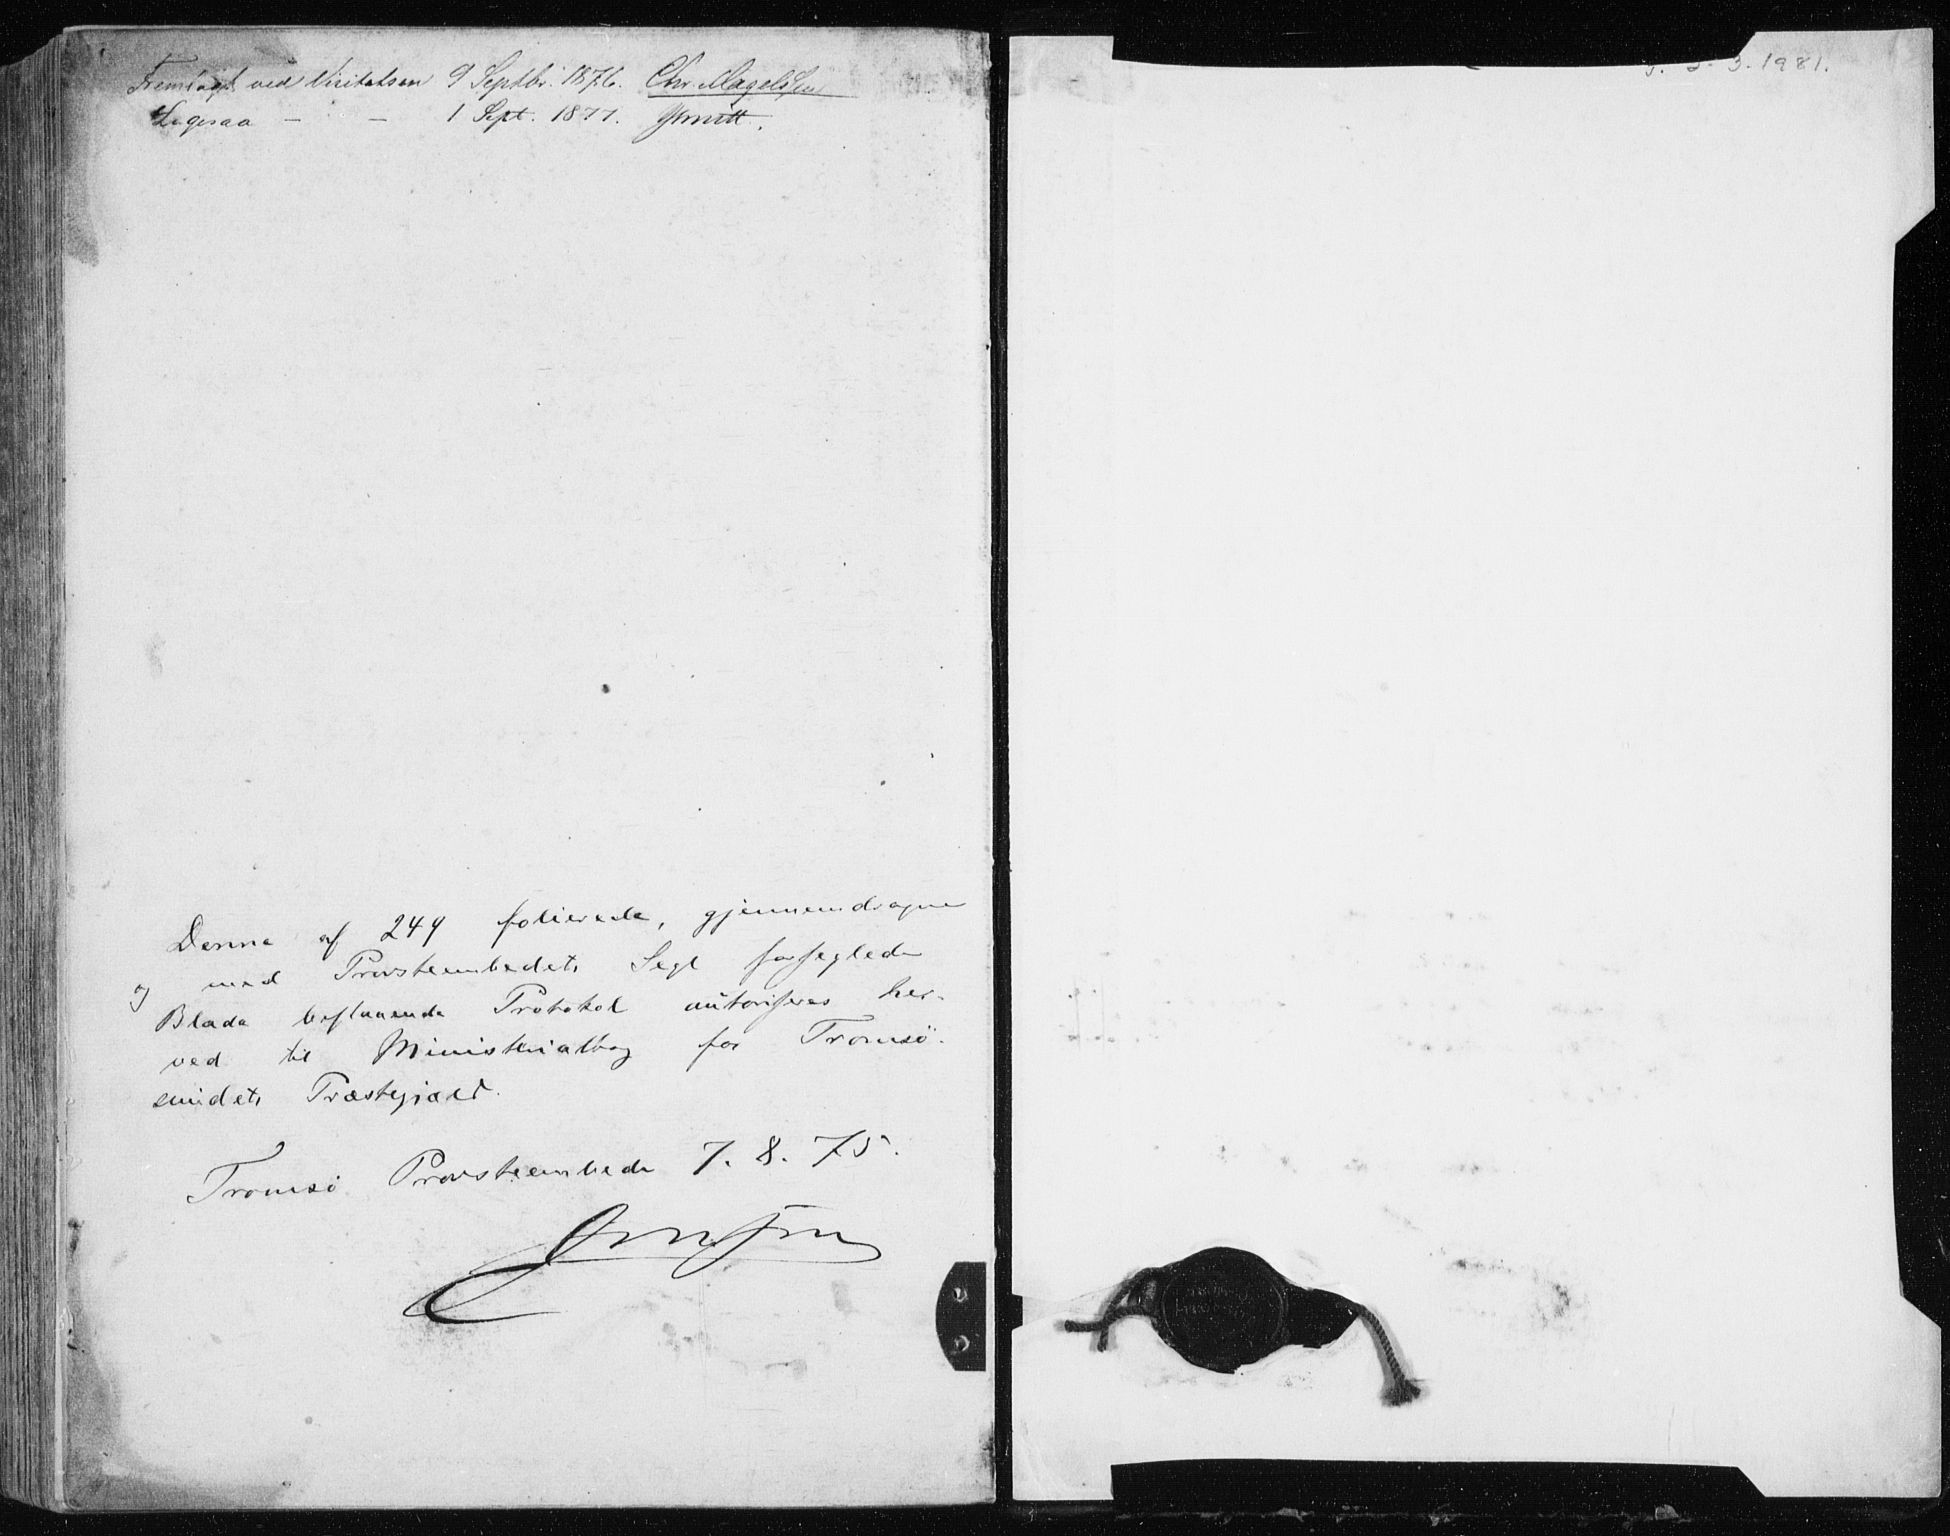 SATØ, Tromsøysund sokneprestkontor, G/Ga/L0003kirke: Parish register (official) no. 3, 1875-1880